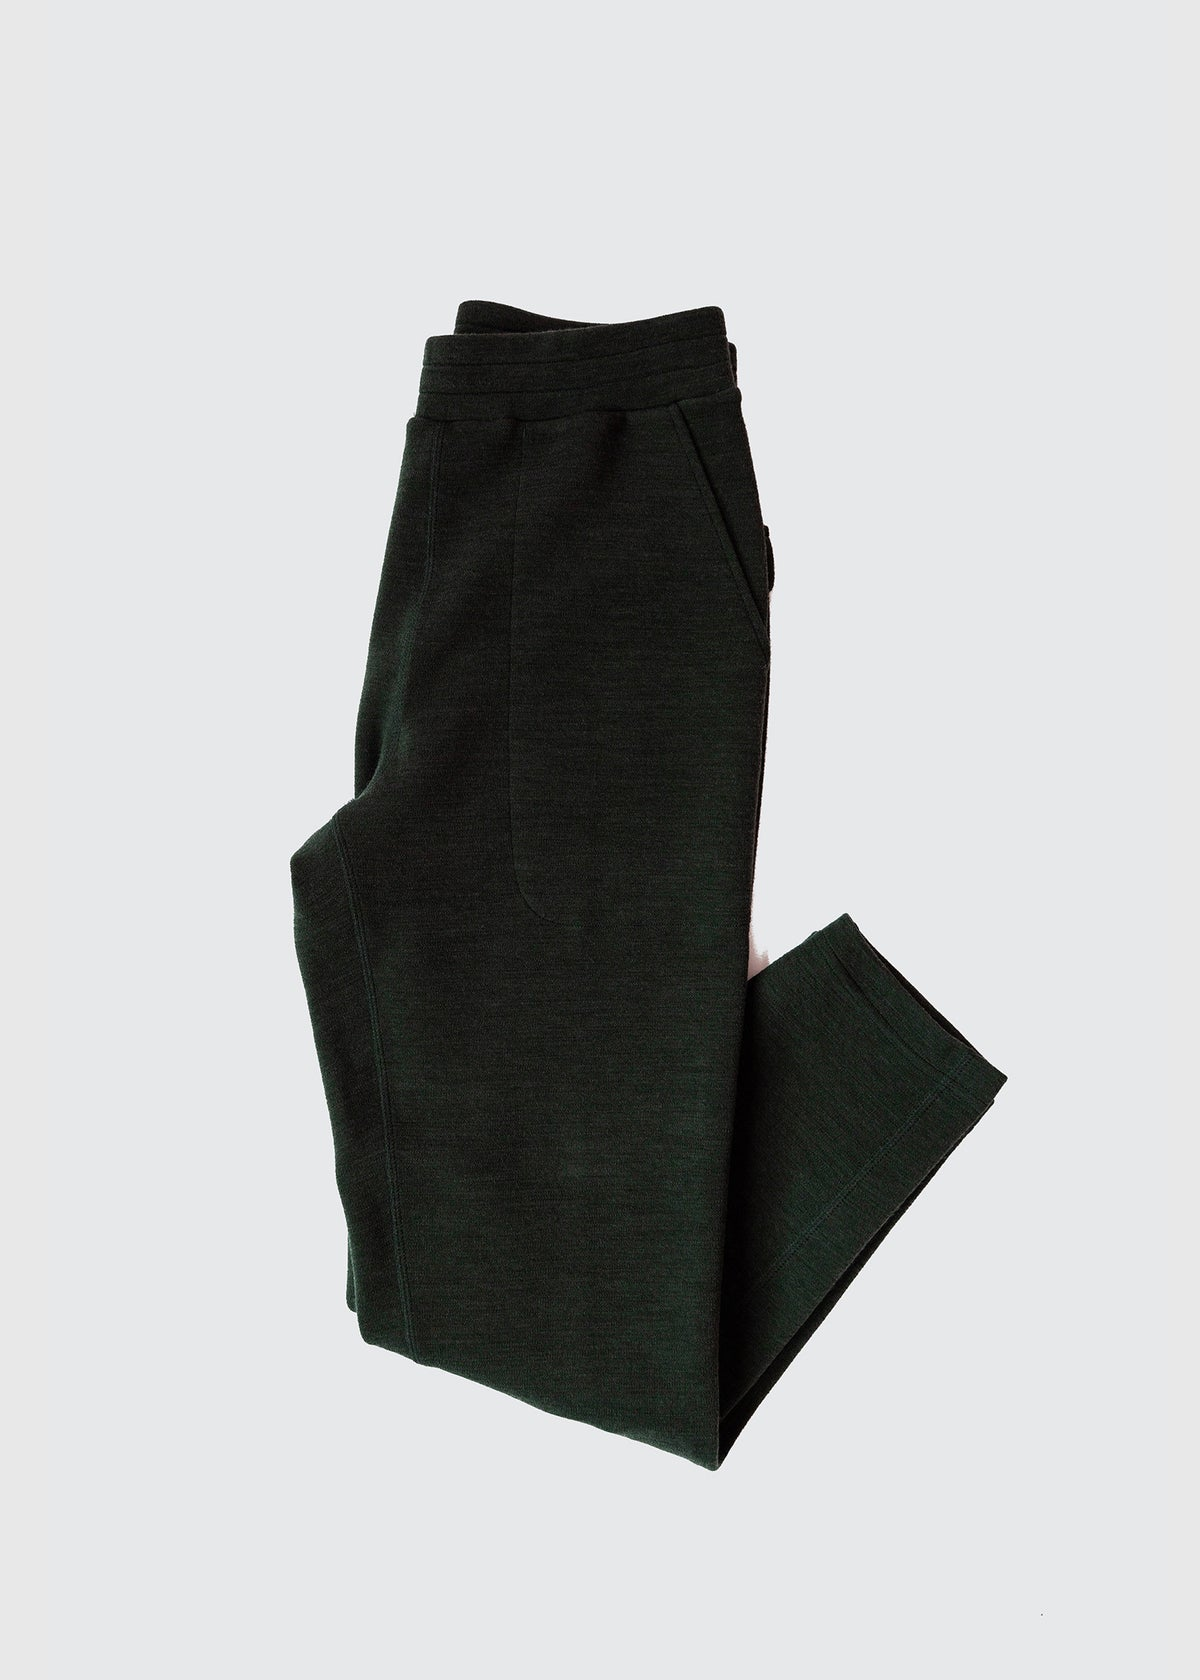 203 - NYLON TROUSER - FOREST - Wilson & Willy's - MPLS Neighbor Goods